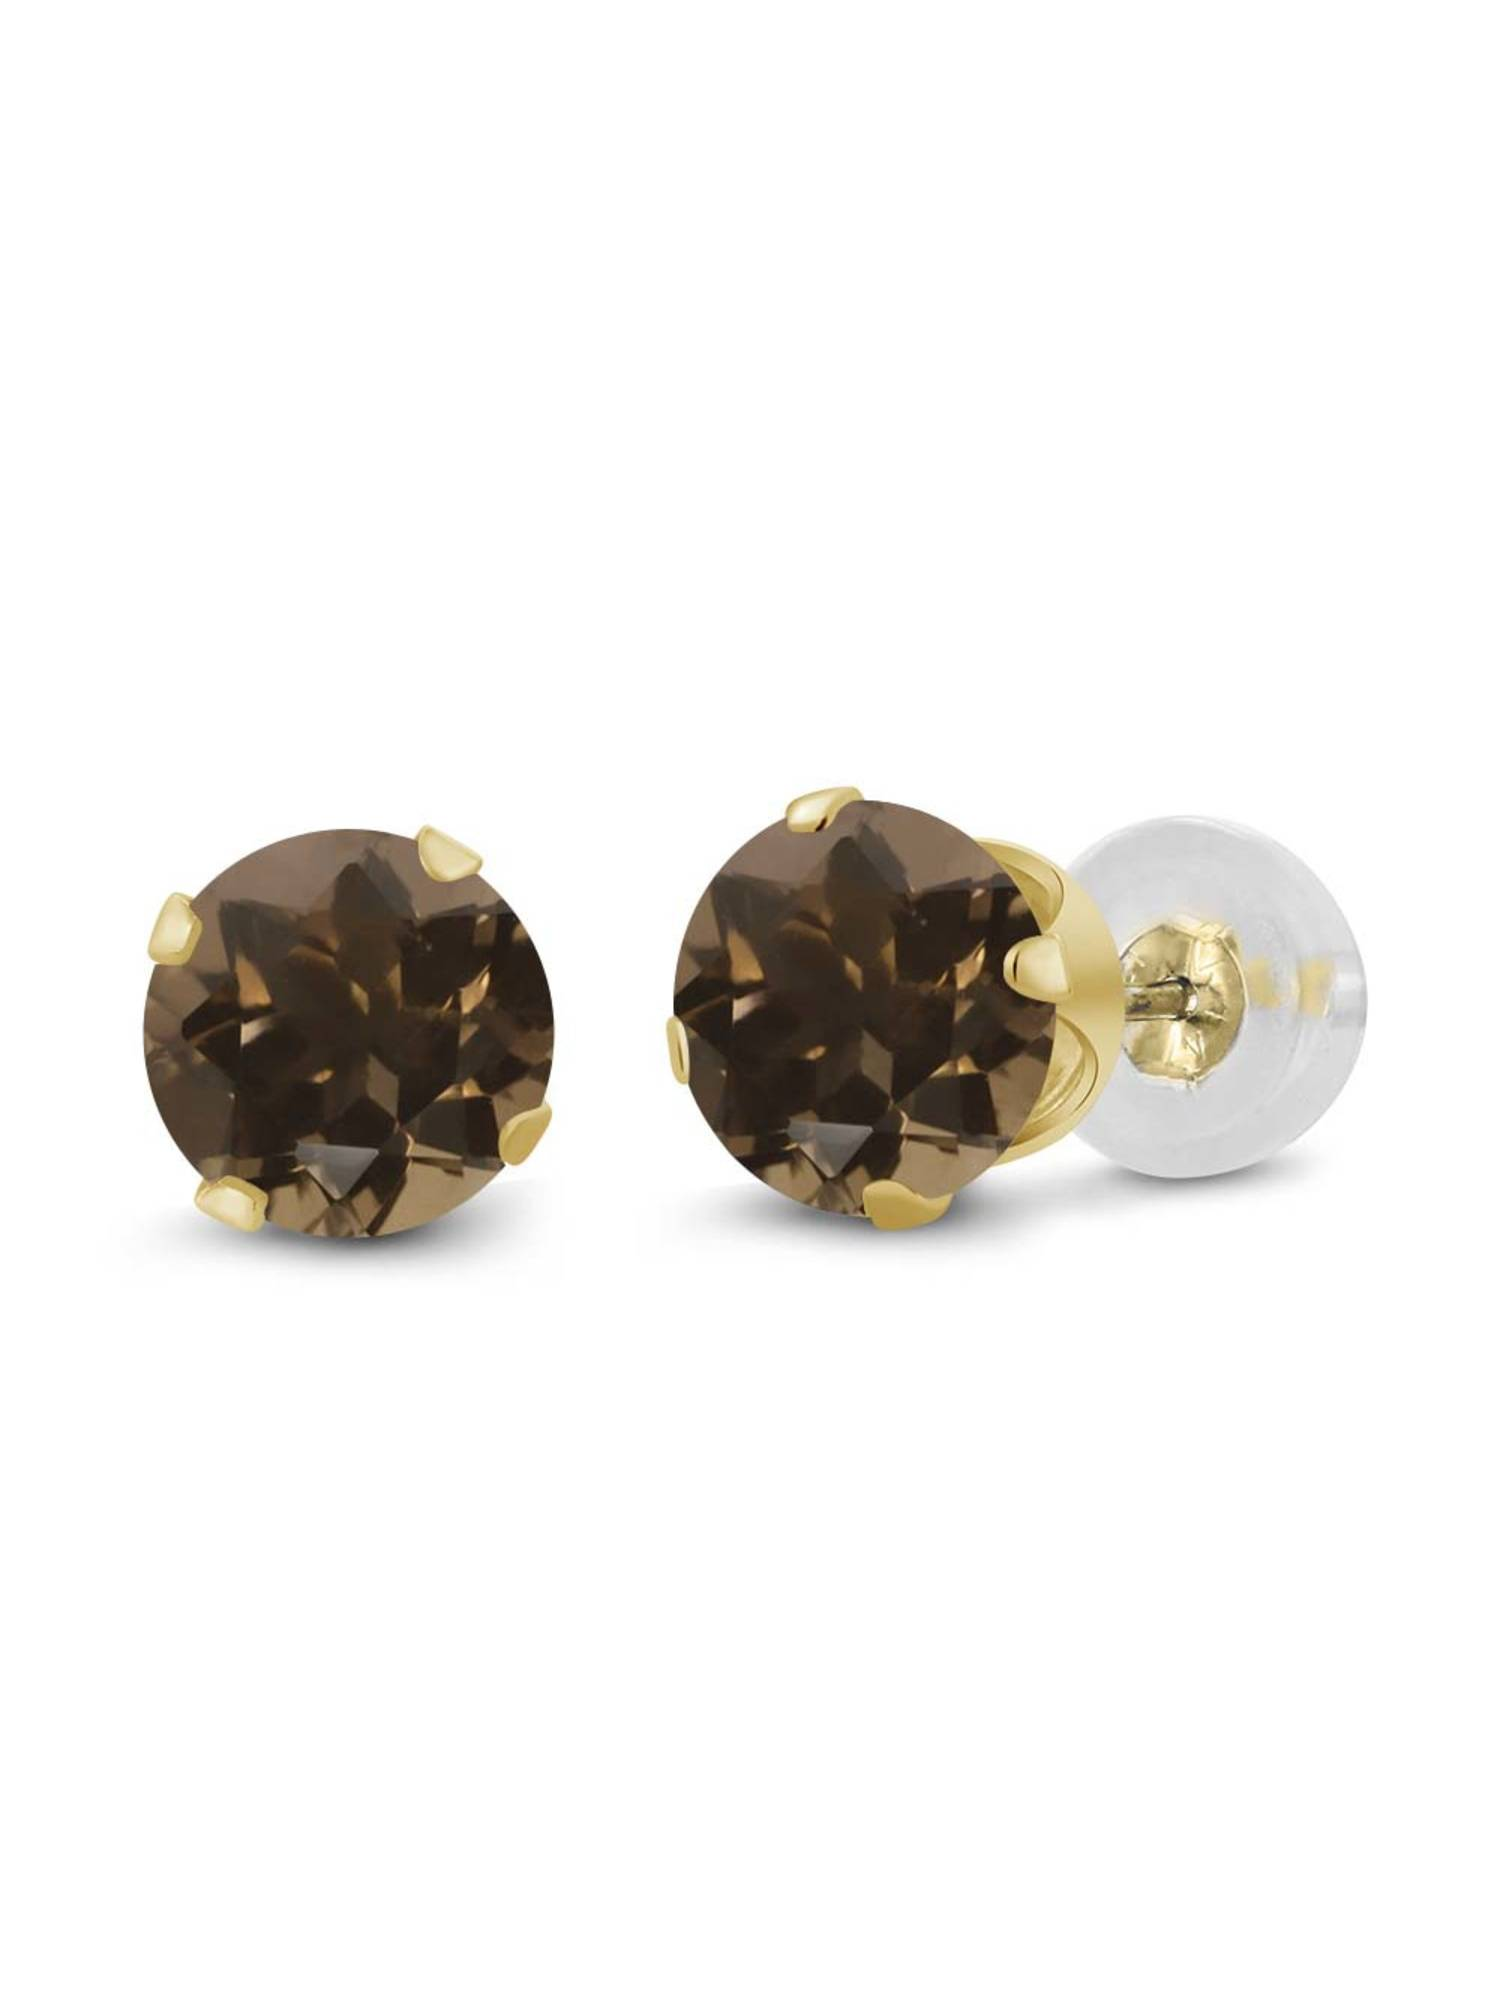 0.92 Ct Round 5mm Brown Smoky Quartz 14K Yellow Gold Stud Earrings